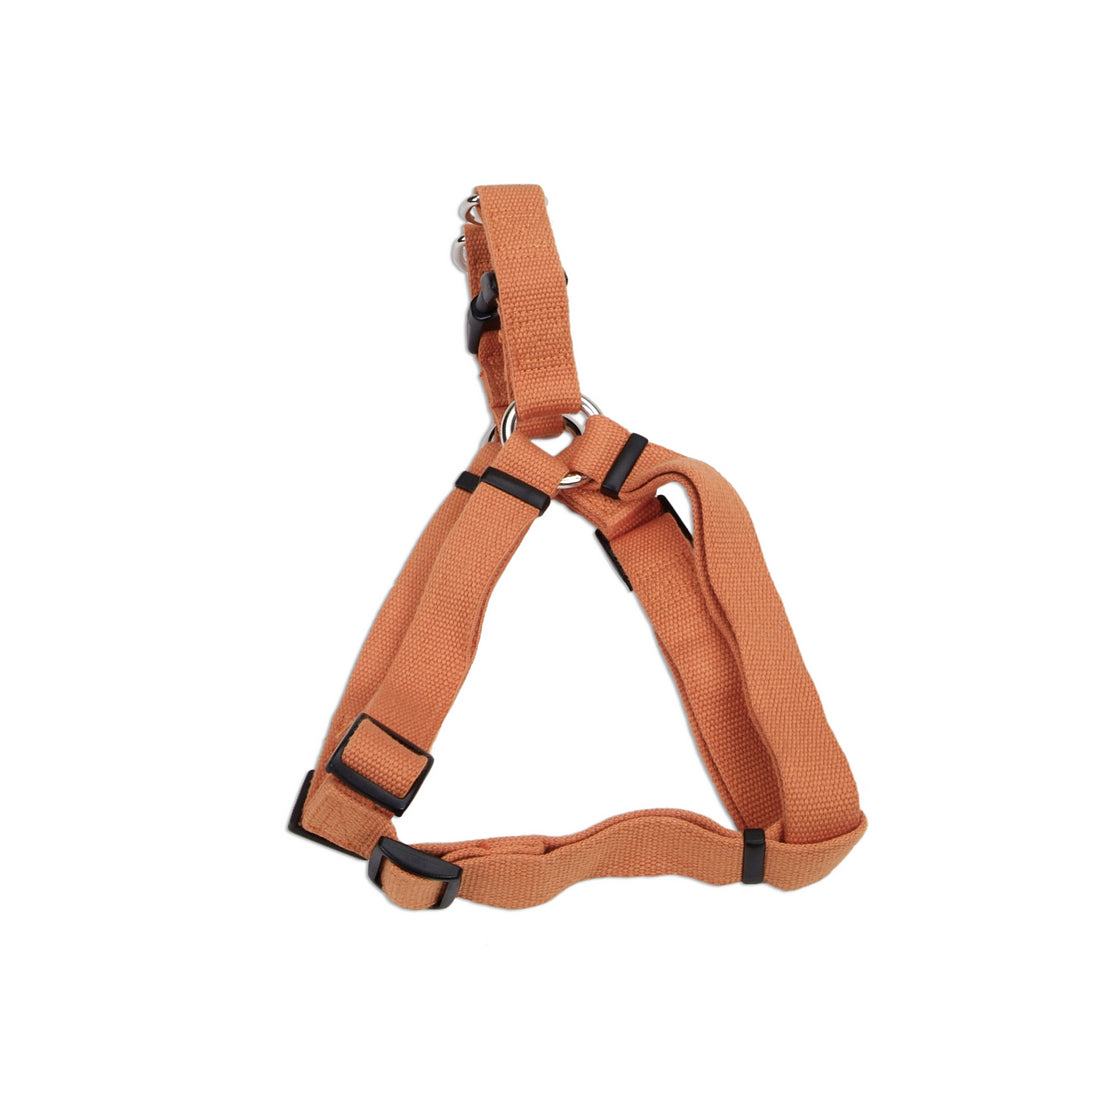 "Coastal Soy Comfort Wrap Adjustable Harness 16-24"" Pumpkin"